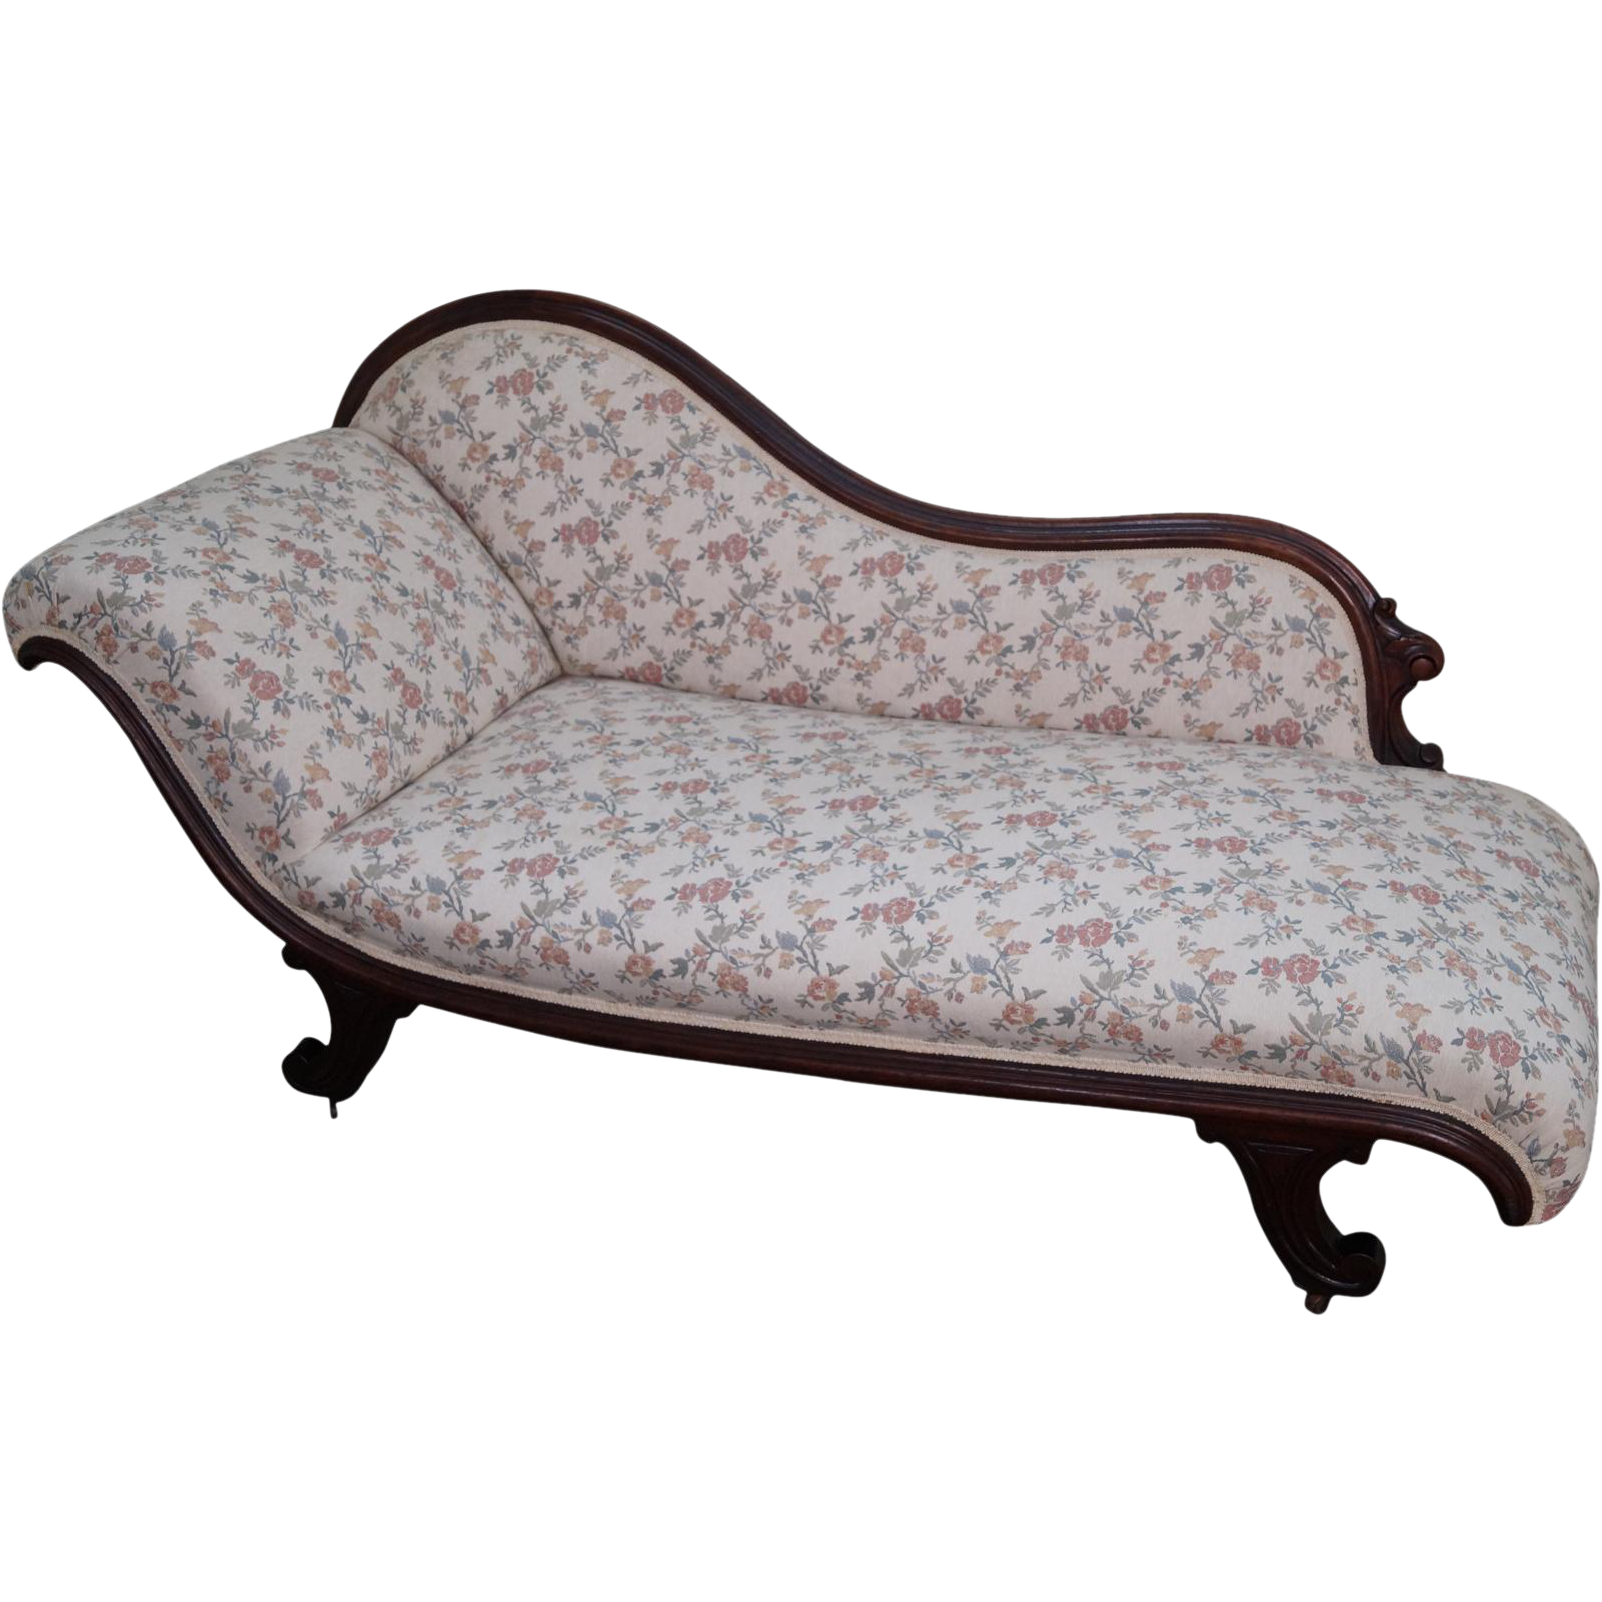 Antique 19th century walnut frame recamier chaise lounge for Antique chaise lounge value